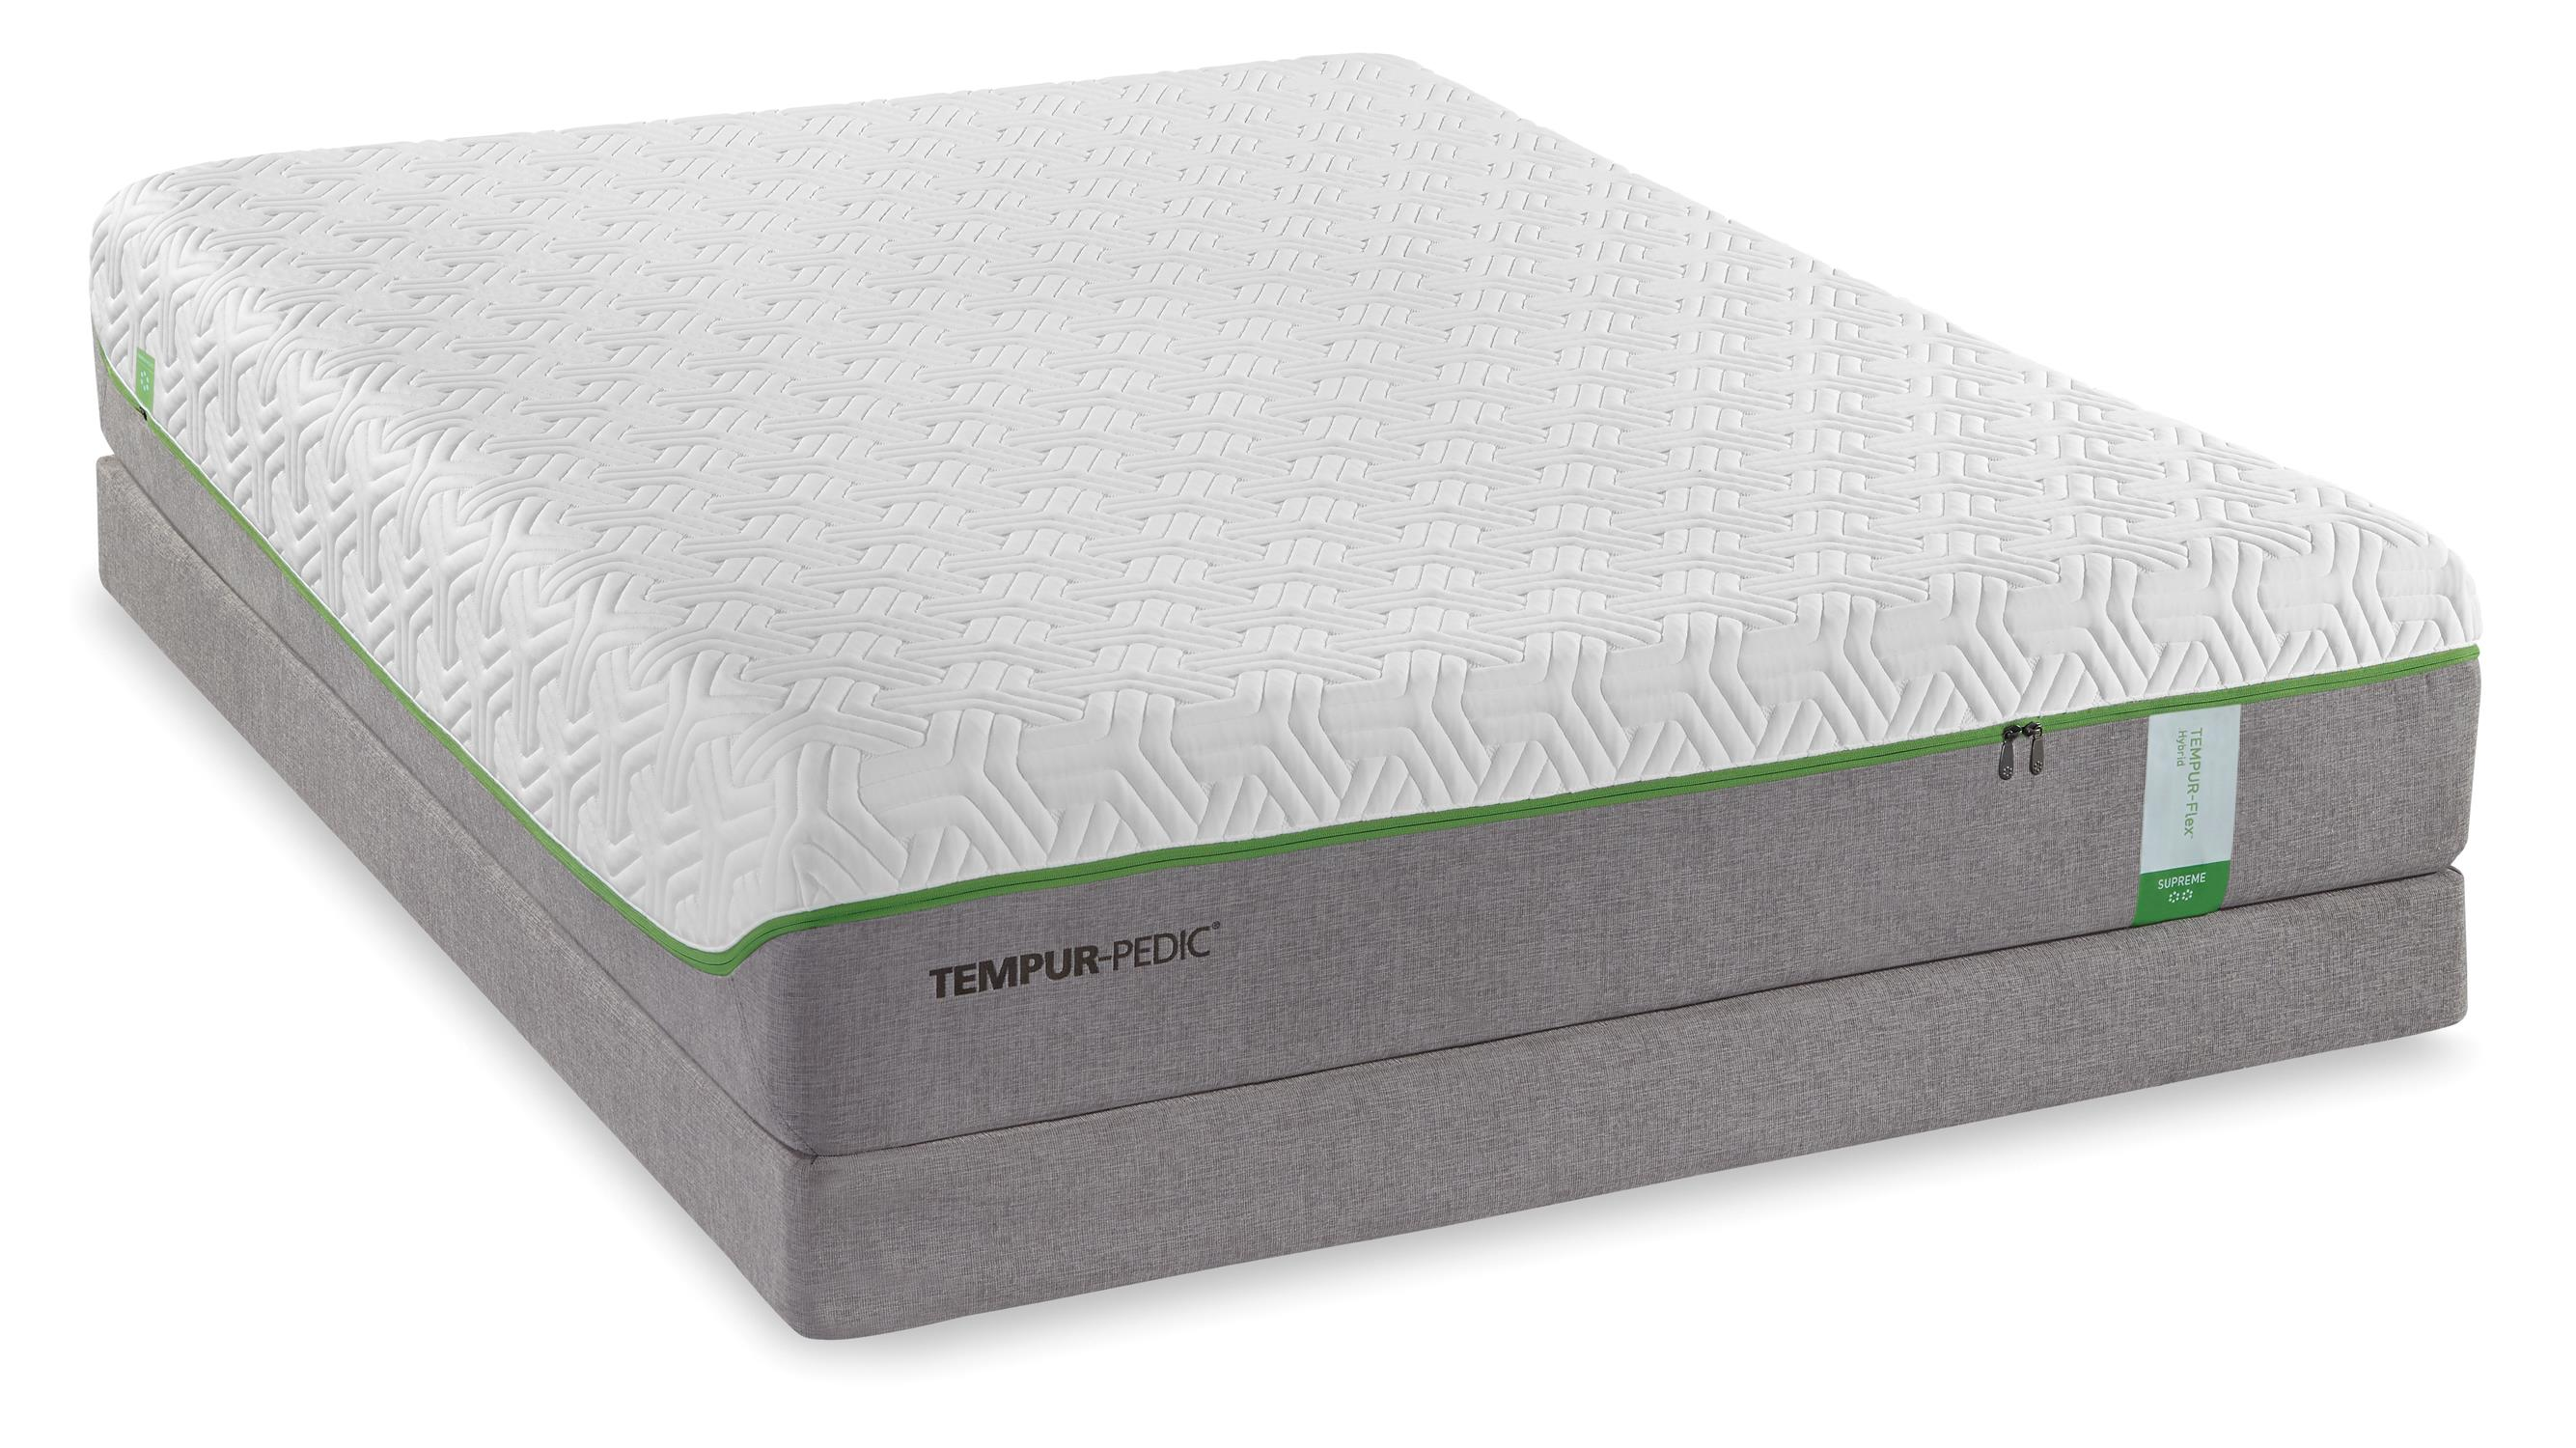 Tempur-Pedic® TEMPUR-Flex Supreme Cal King Medium Plush Mattress Set - Item Number: 10116180+2x20510190